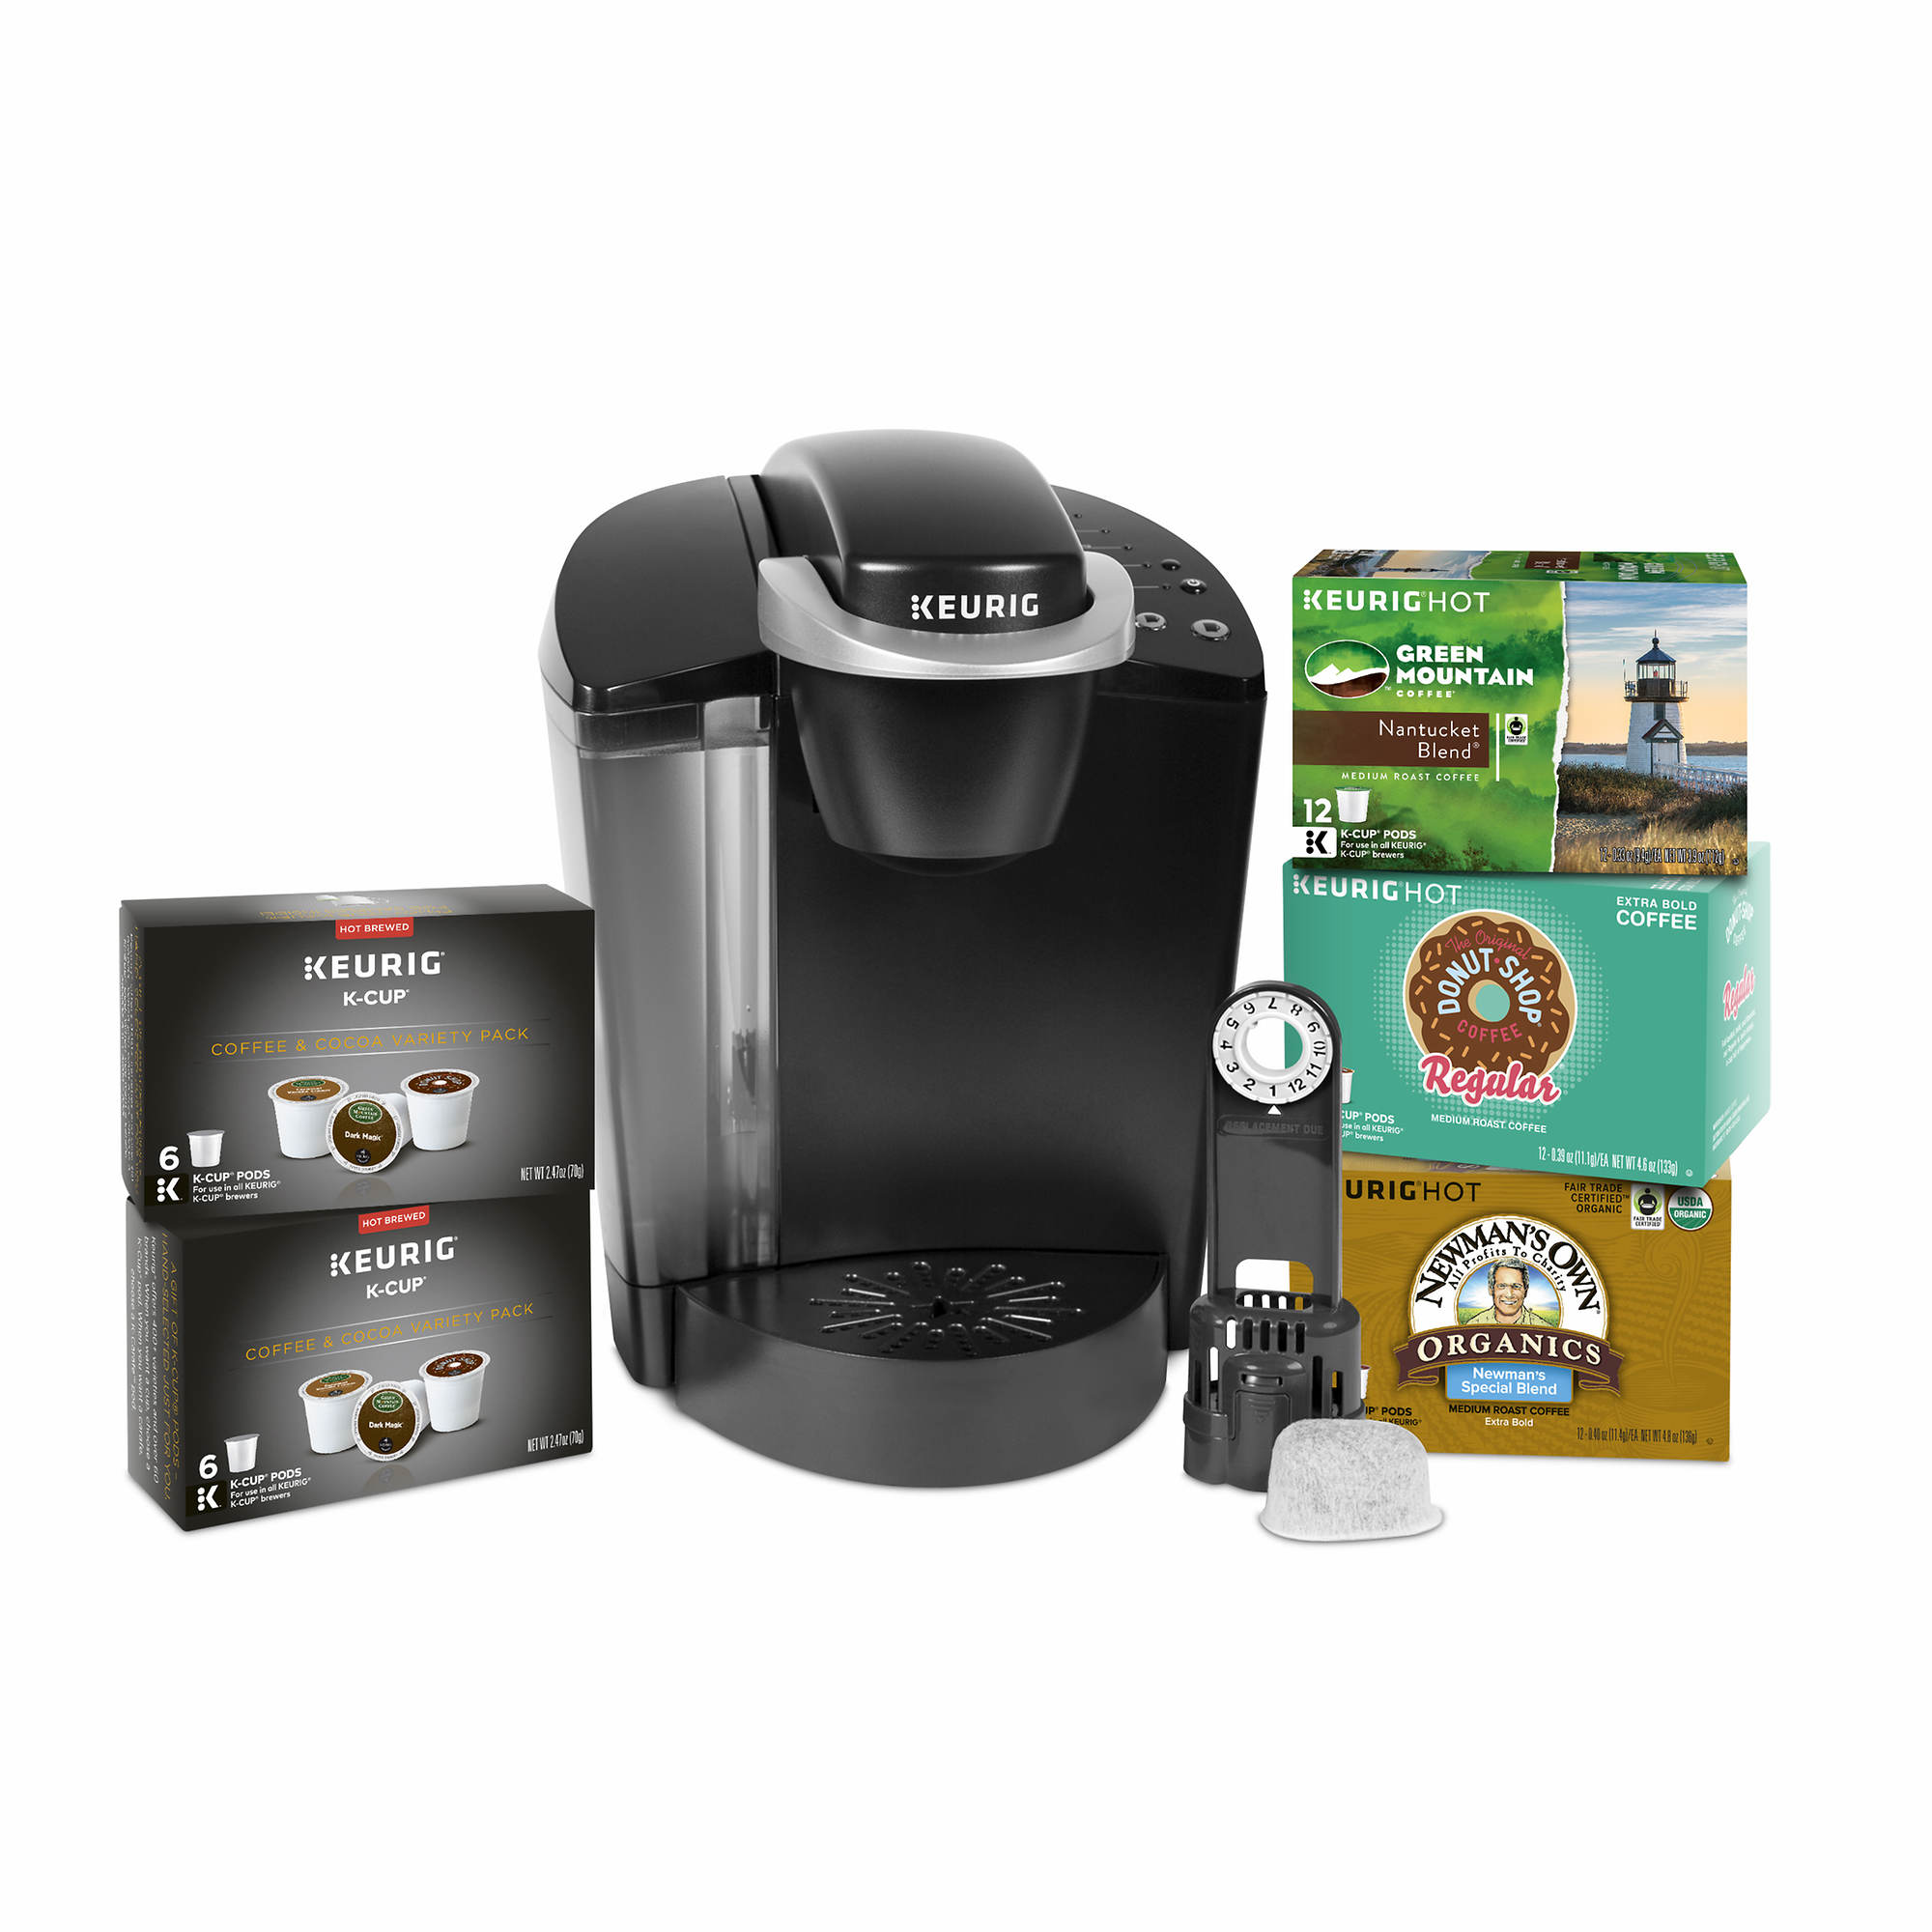 Keurig Red Coffee Maker Instructions : Keurig K50B Single-Serve Coffee Maker - Black - BJ s Wholesale Club